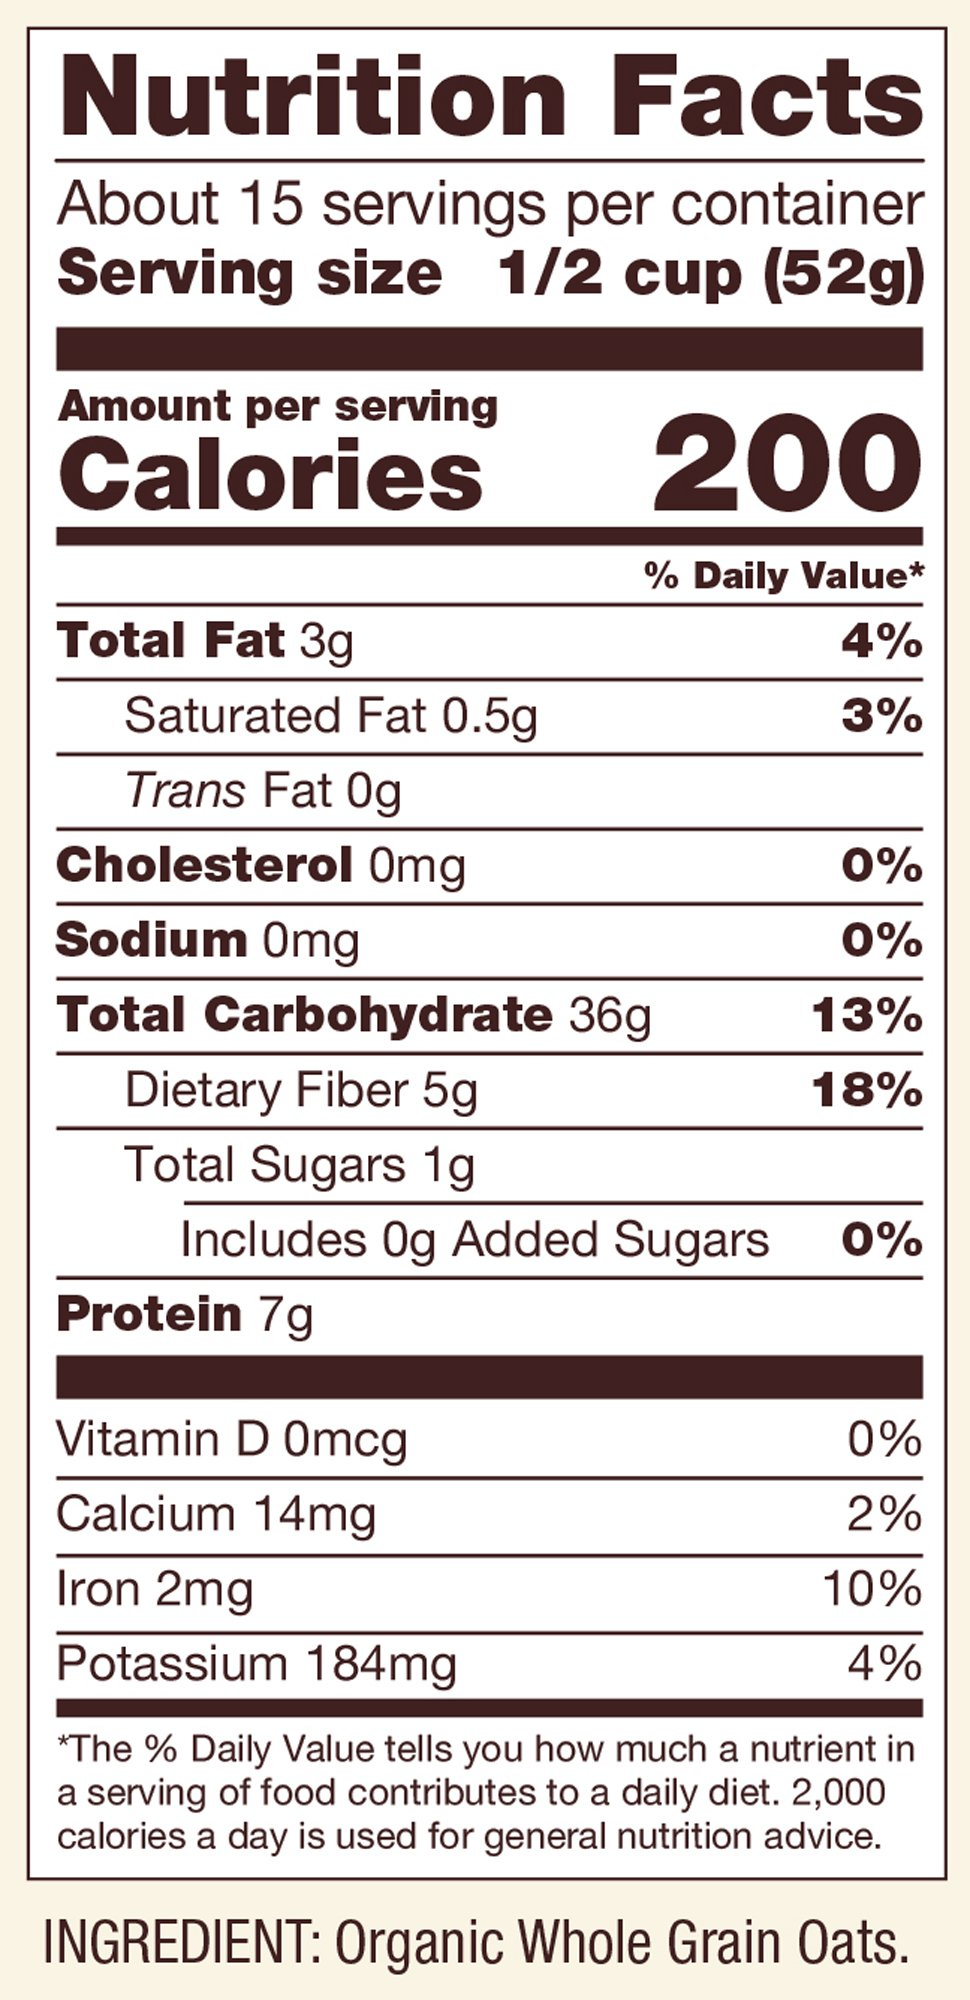 Bob's Red Mill (Resealable) Gluten Free Organic Quick Cooking Oats, 28-ounce (Pack of 4) by Bob's Red Mill (Image #1)